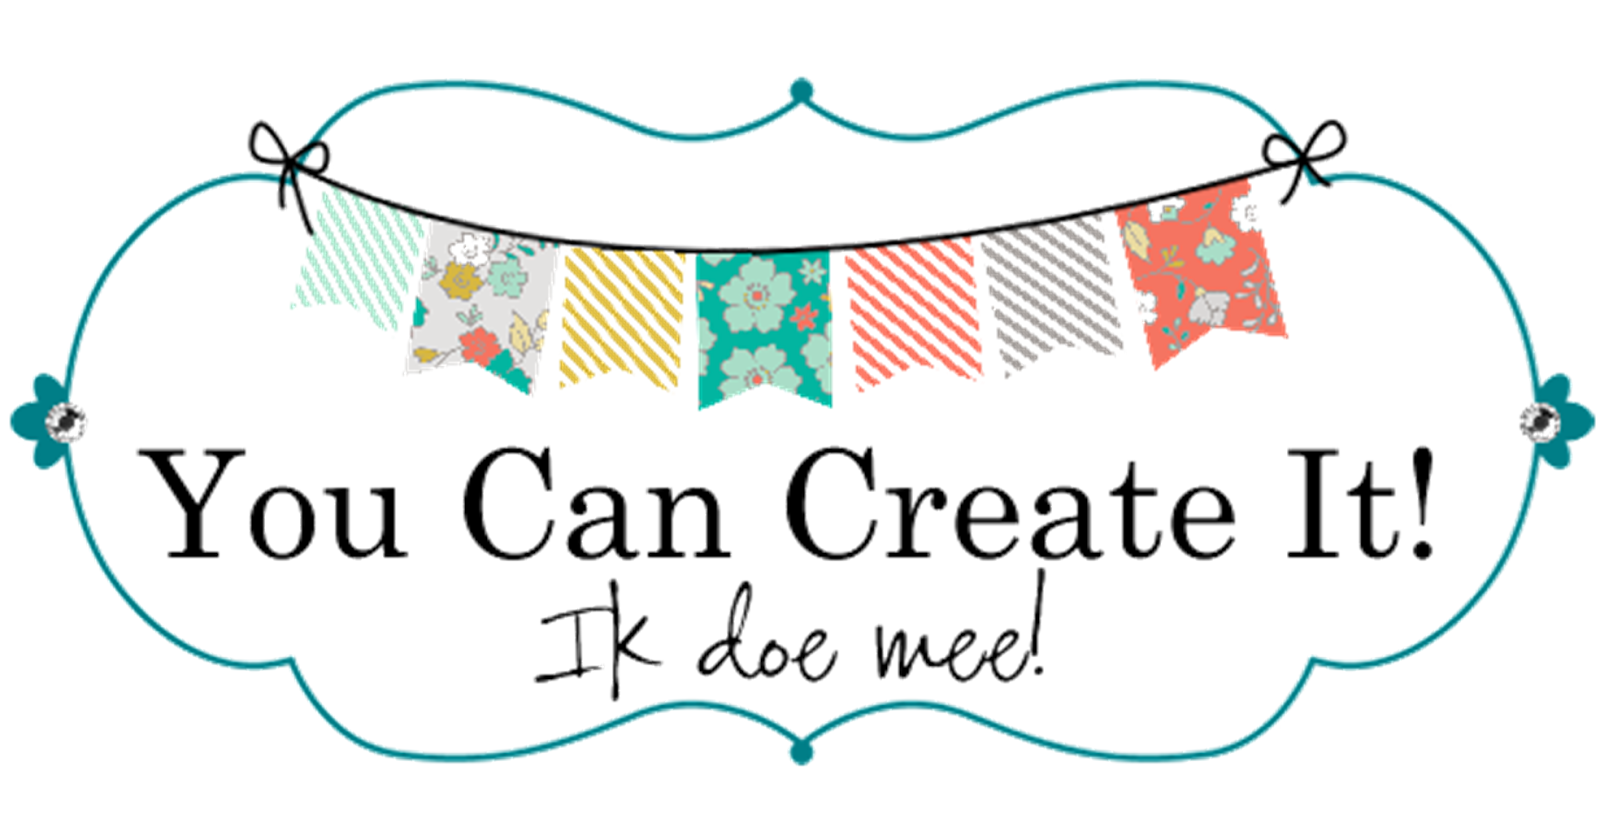 http://carooskaartjes.blogspot.nl/2015/05/you-can-create-it-nl-4.html